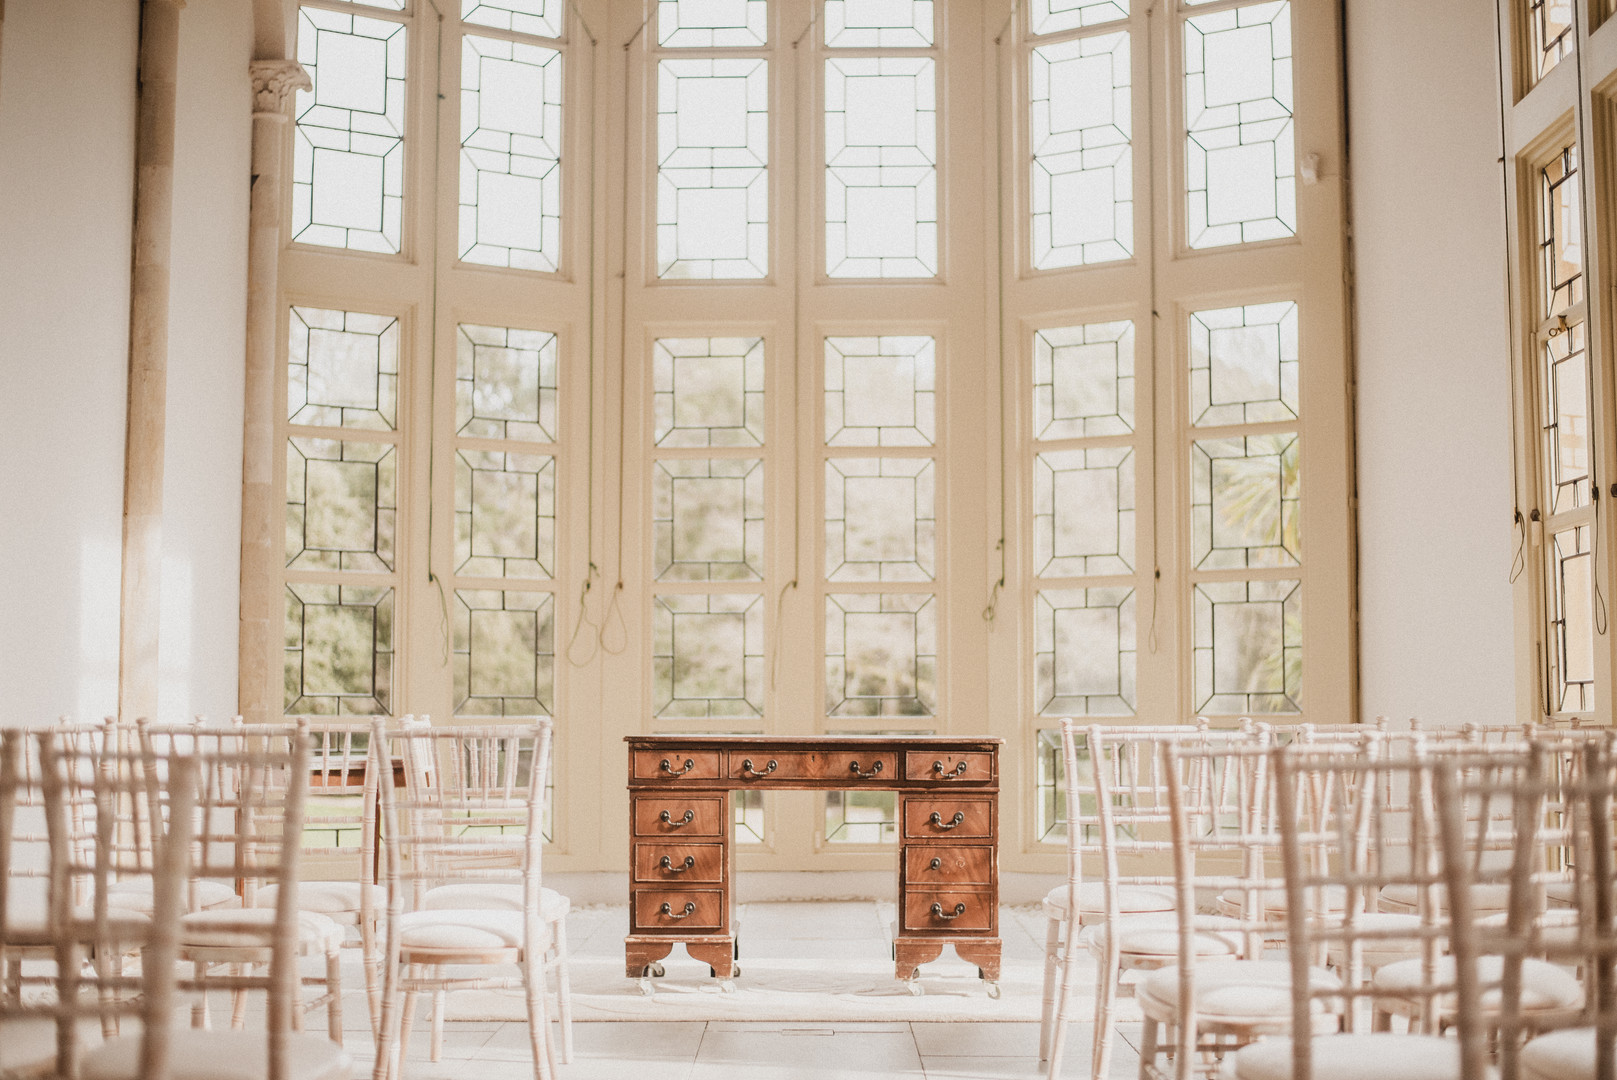 The Parlor in Highcliffe Castle is used today for weddings and other gatherings. The windows surrounding the room allow a warm, soft glow to fill the space.  Mary Kathryn Carpenter